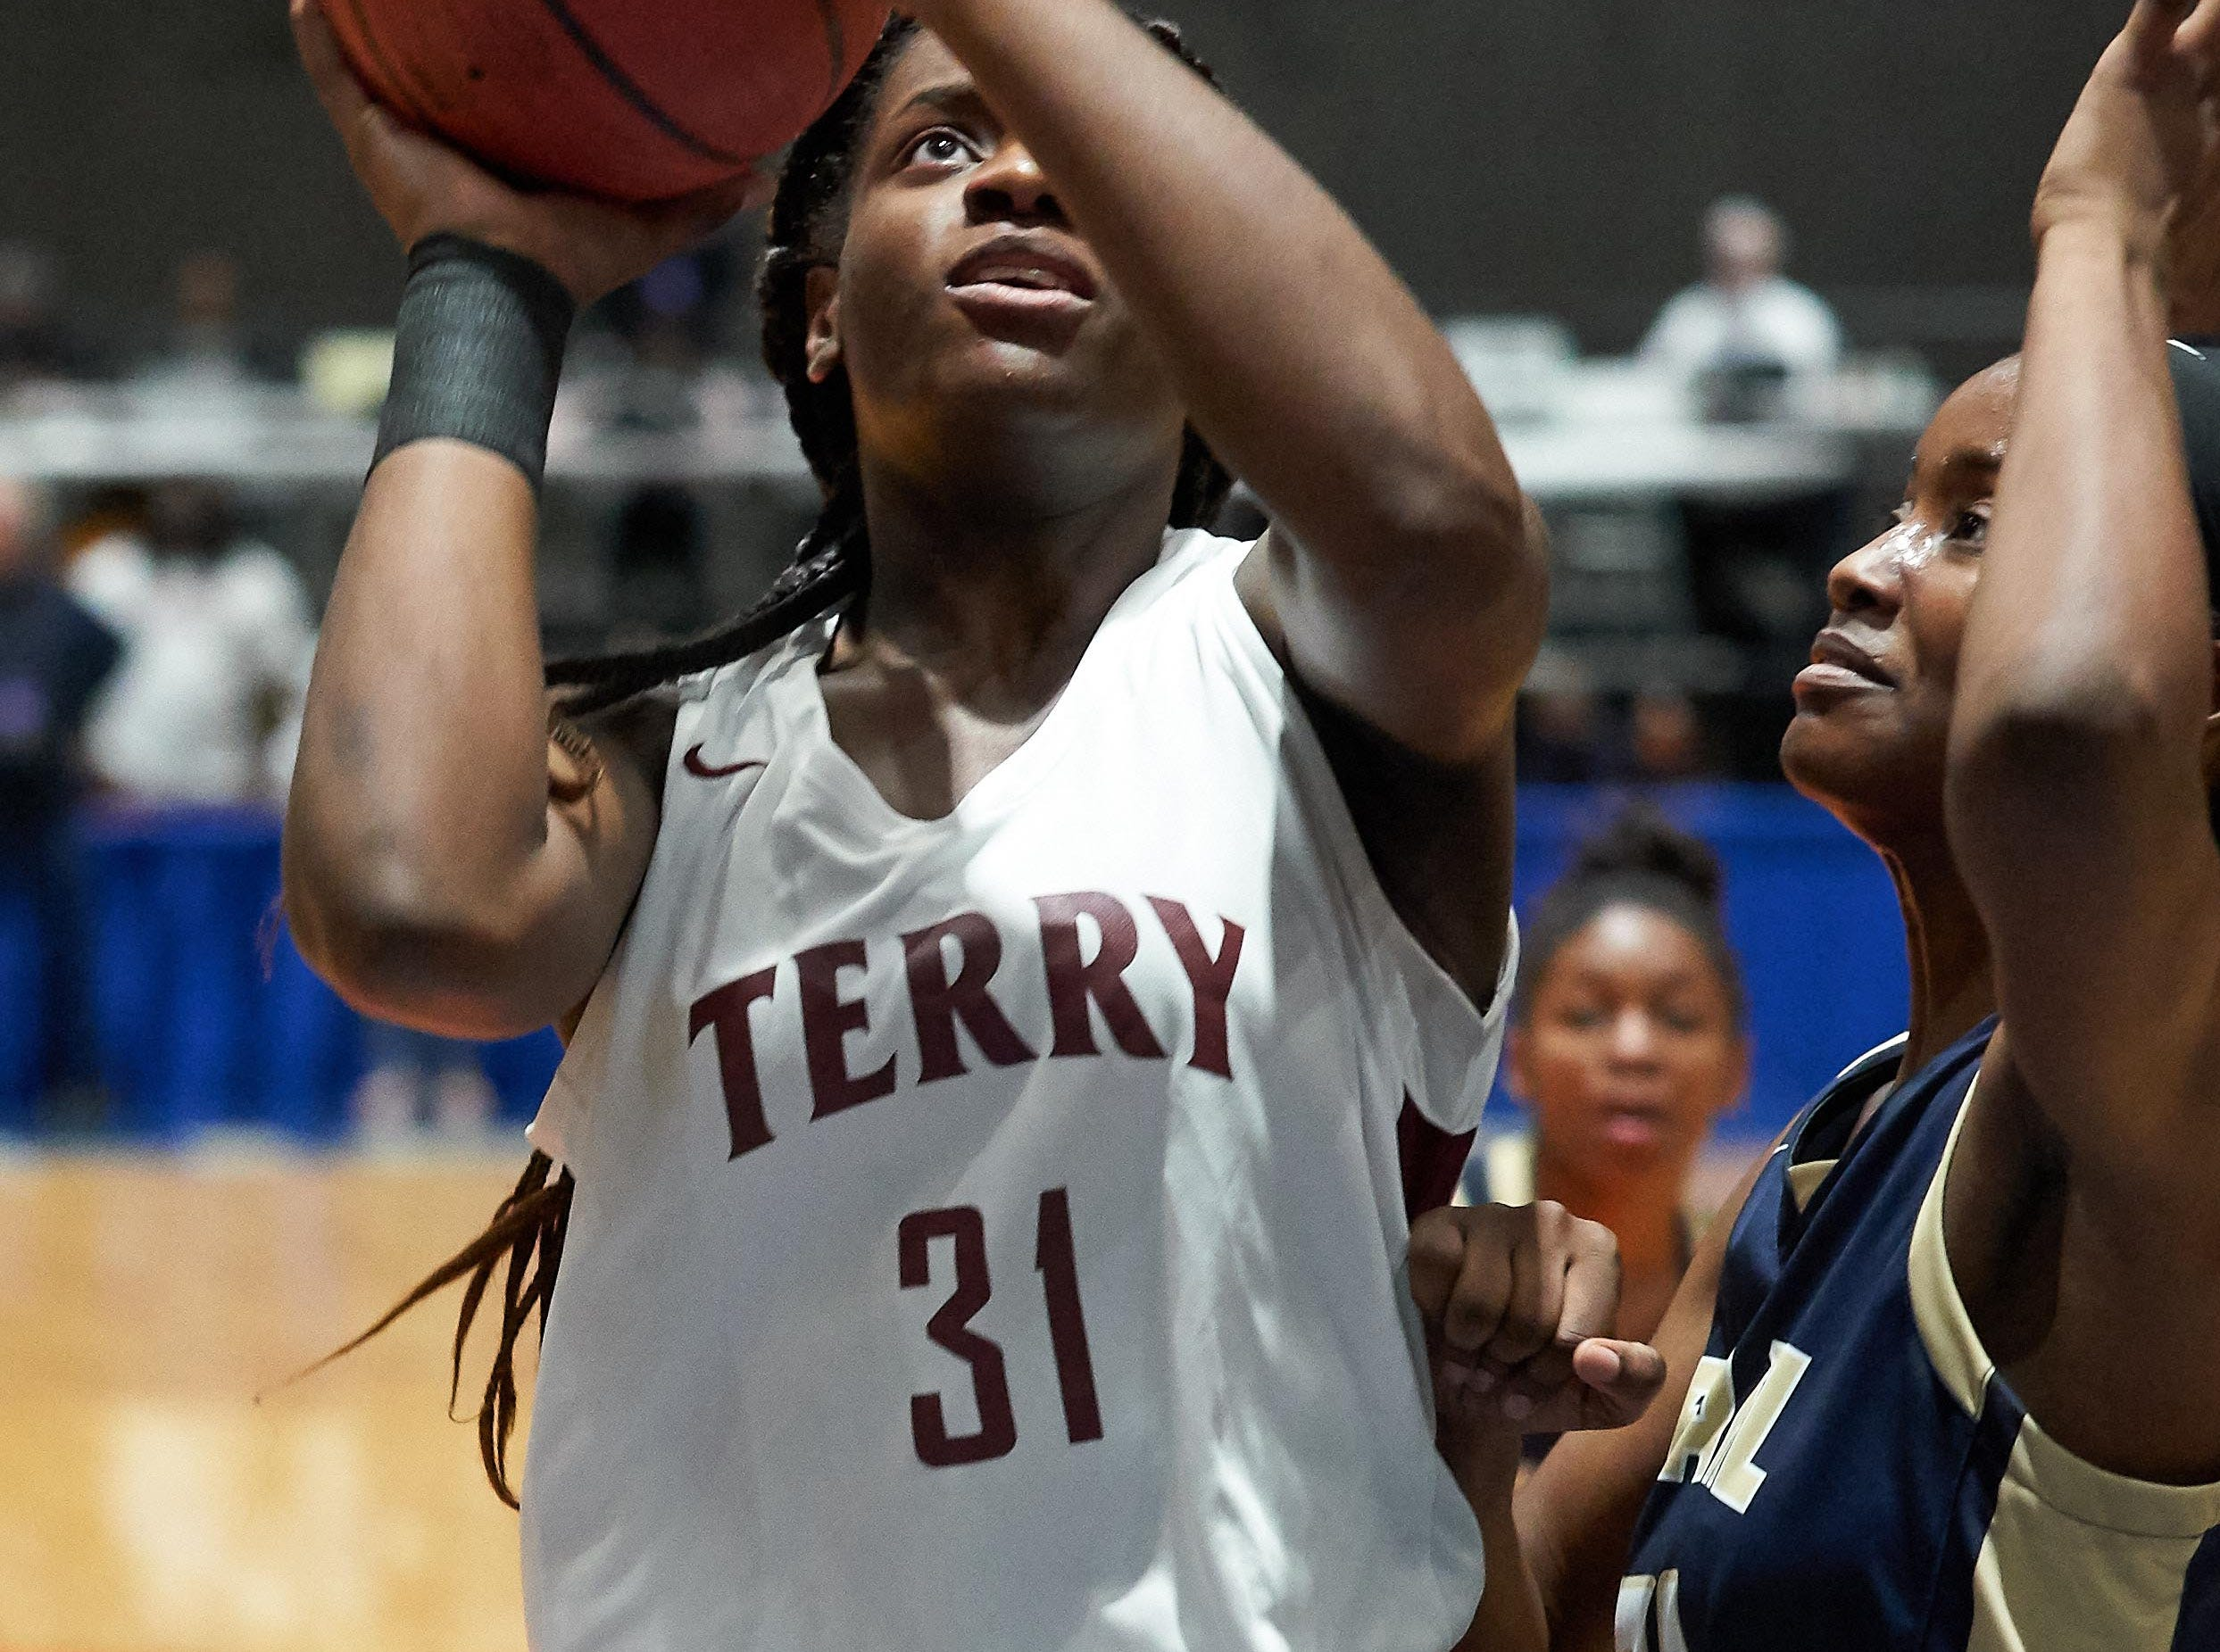 Terry's Bryanna Taylor (31) shoots during the MHSAA 6A Girls Basketball Championship Finals held at the Mississippi Coliseum in Jackson, MS, Saturday March 9th, 2019.(Bob Smith)